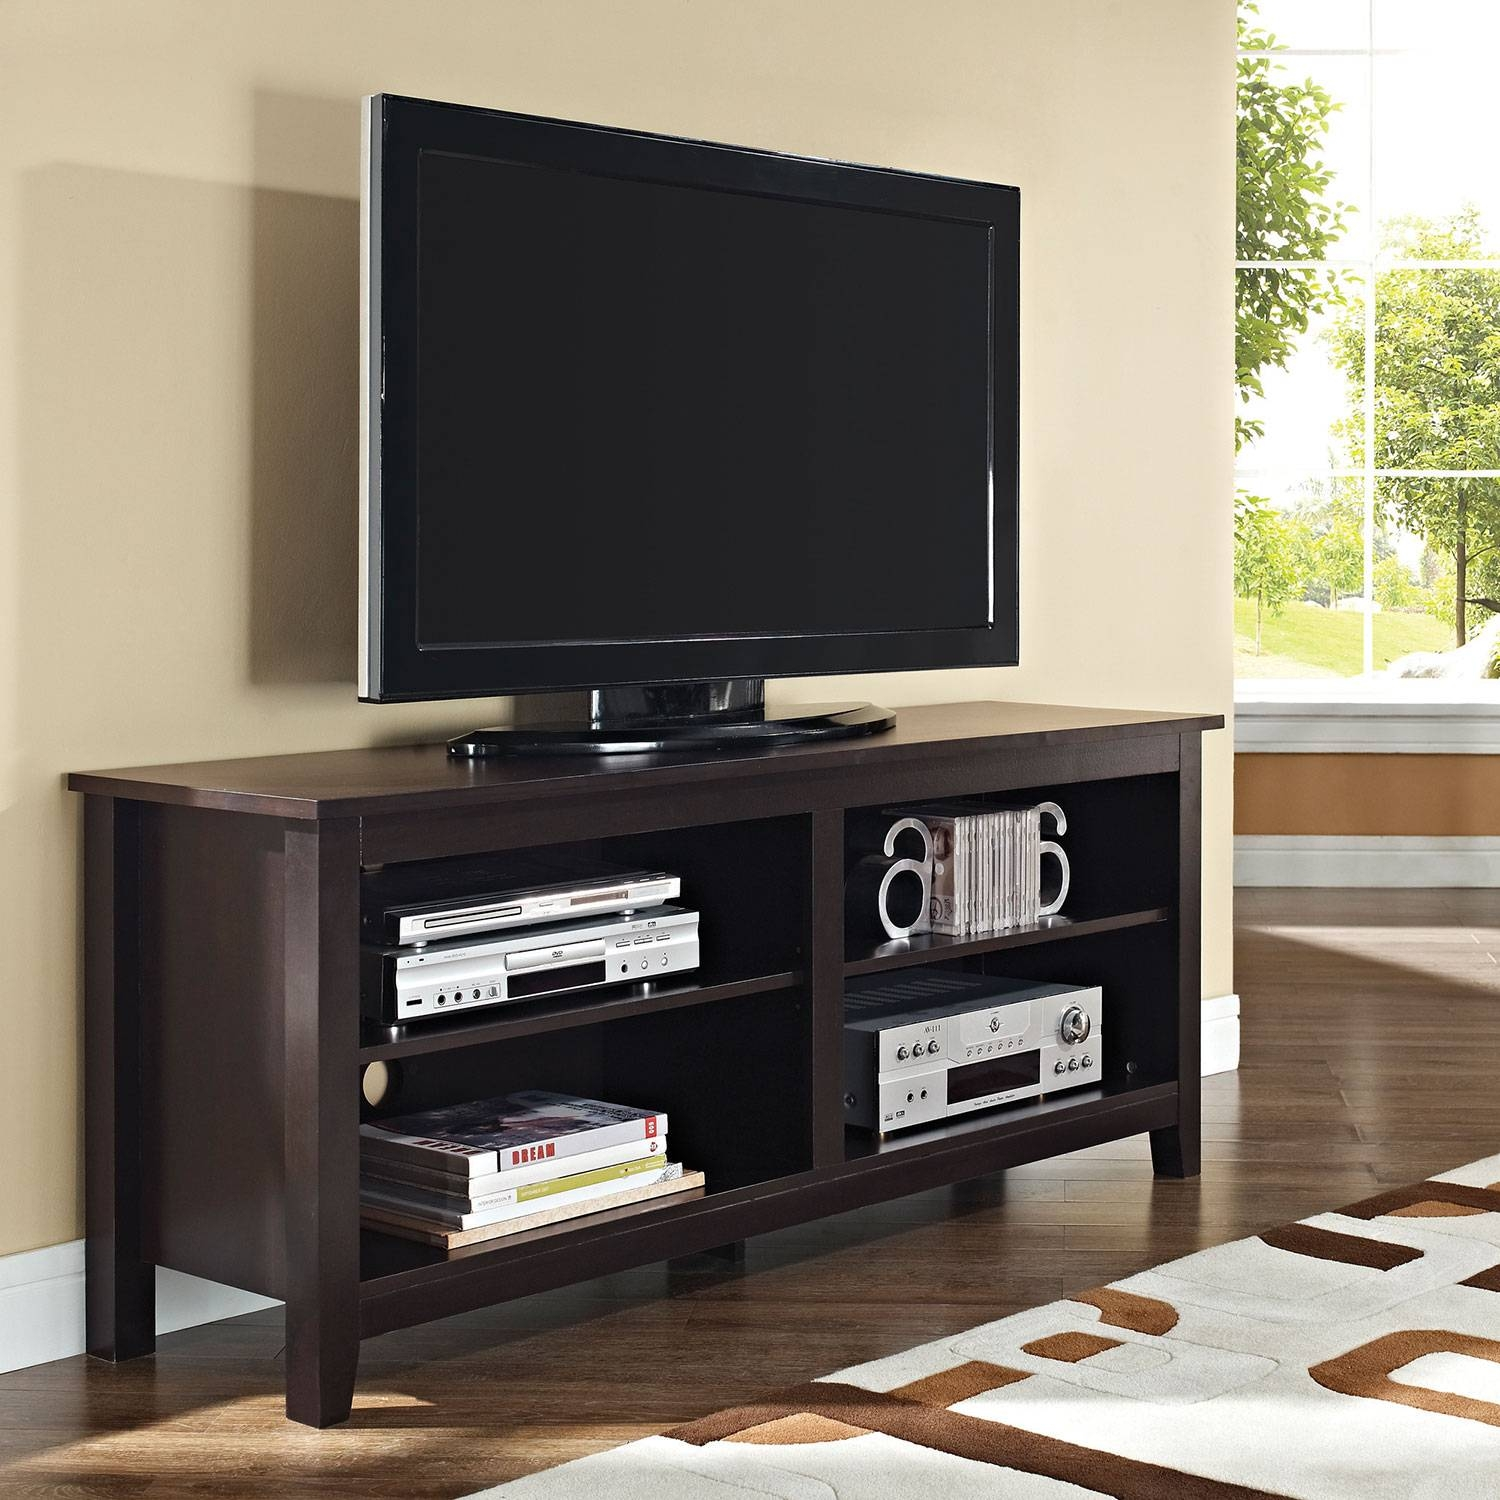 """Walker Edison 65"""" Tv Stand - Espresso : Tv Stands - Best Buy Canada for Cheap Wood Tv Stands (Image 13 of 15)"""